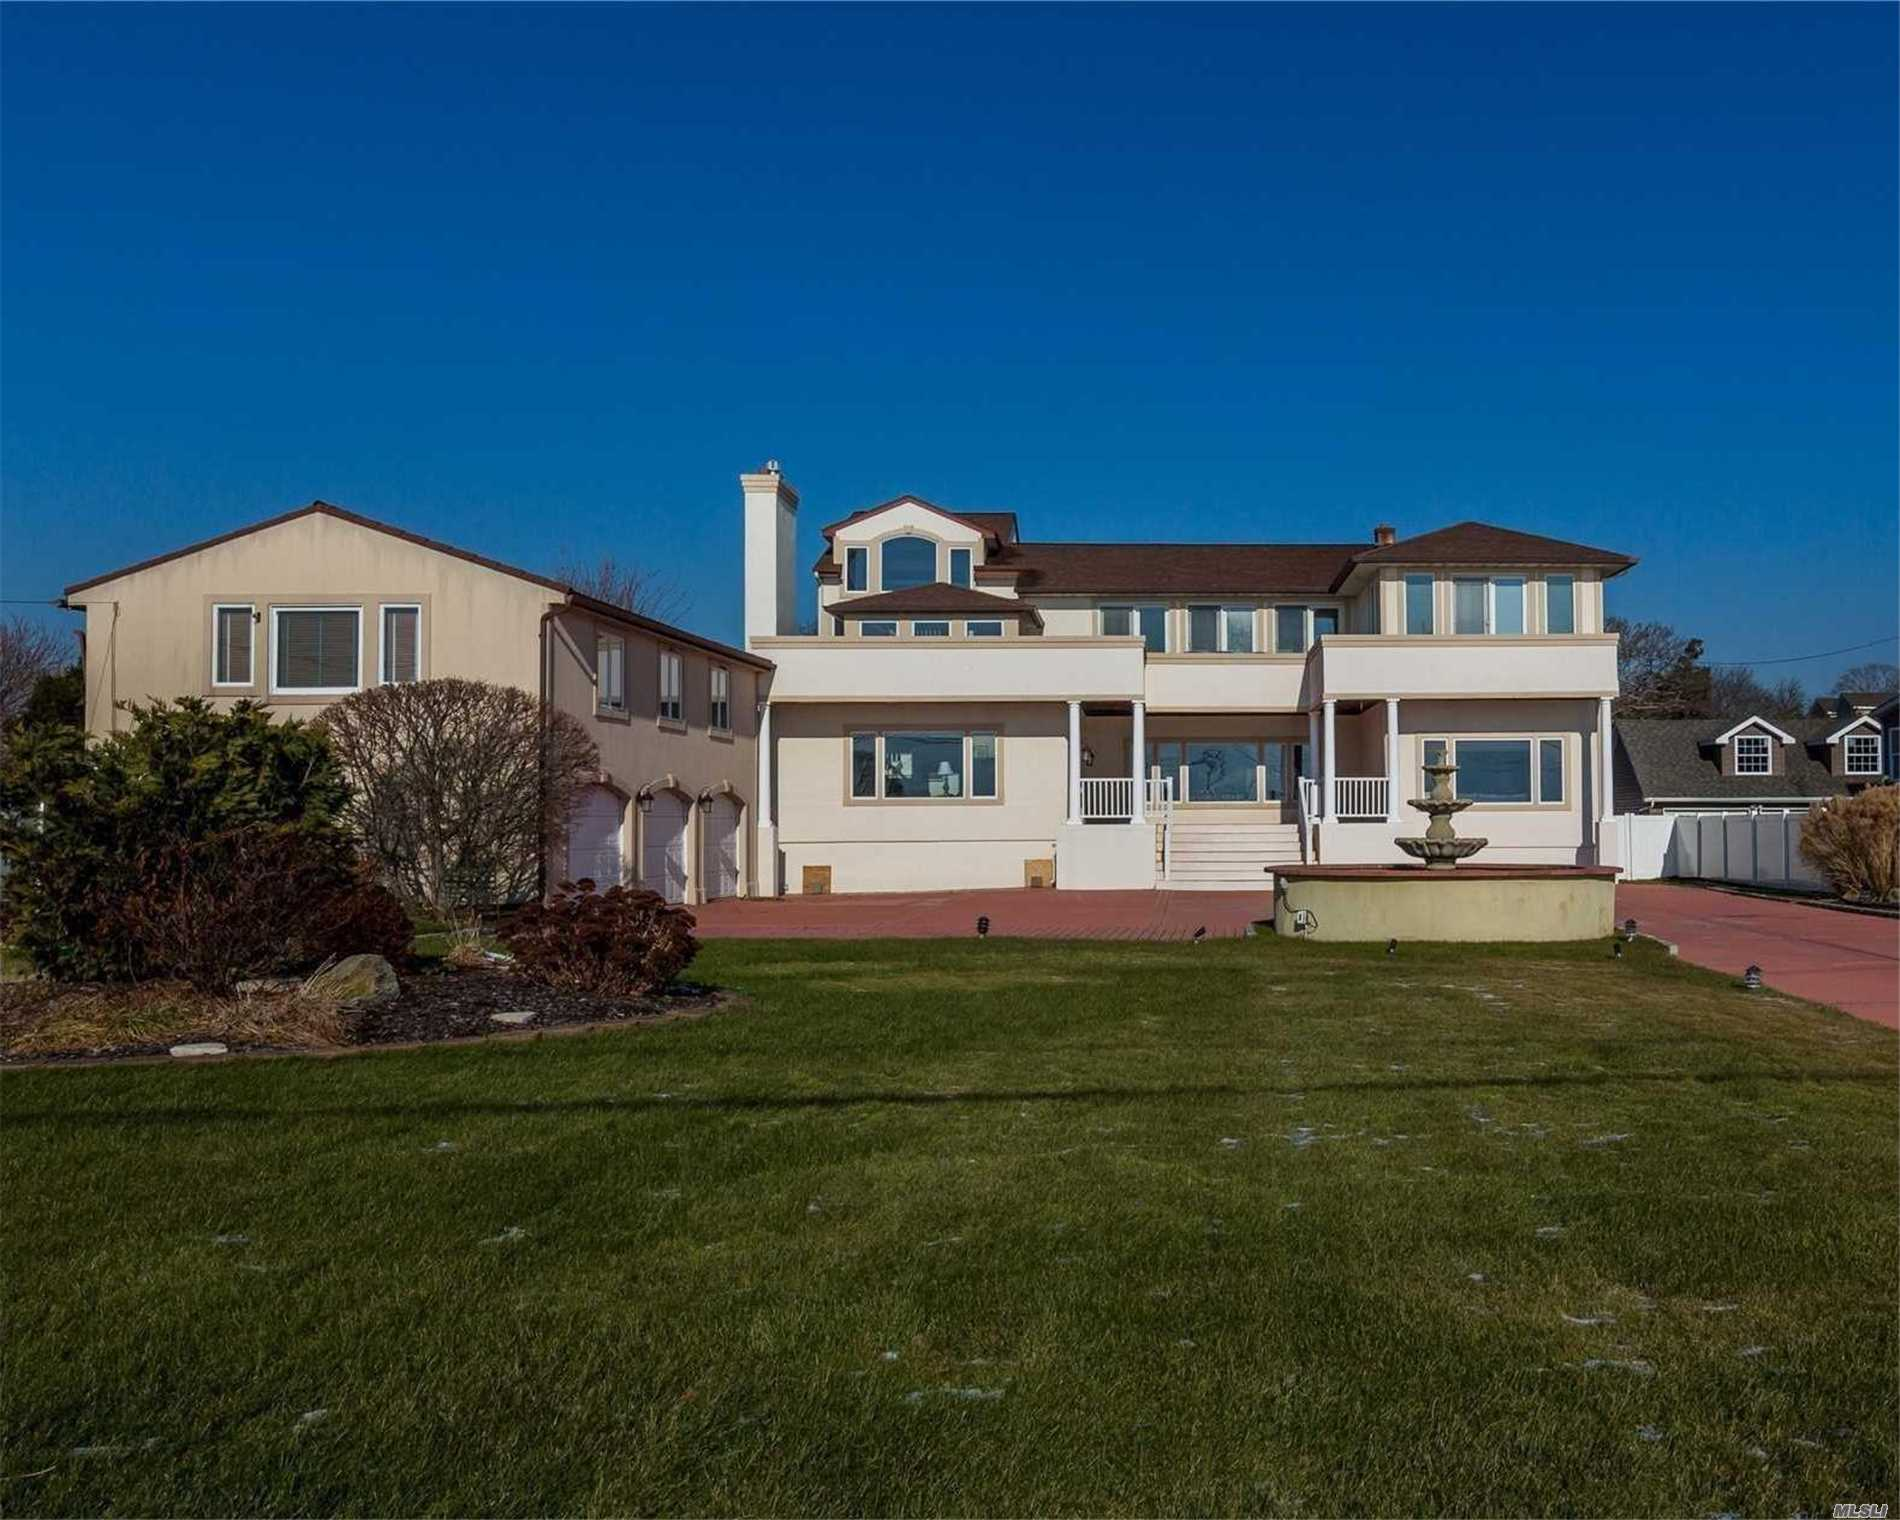 Spacious Tuscan Villa With Spectacular Bay Views! Entire Home Is Raised Per Fema Totally Updated W/ Heated Pool/Patio/Barbeque Area, Large 3 Car Garage W/2nd Floor Heated And Cooled Bonus Area. Location Speaks For Itself!!!